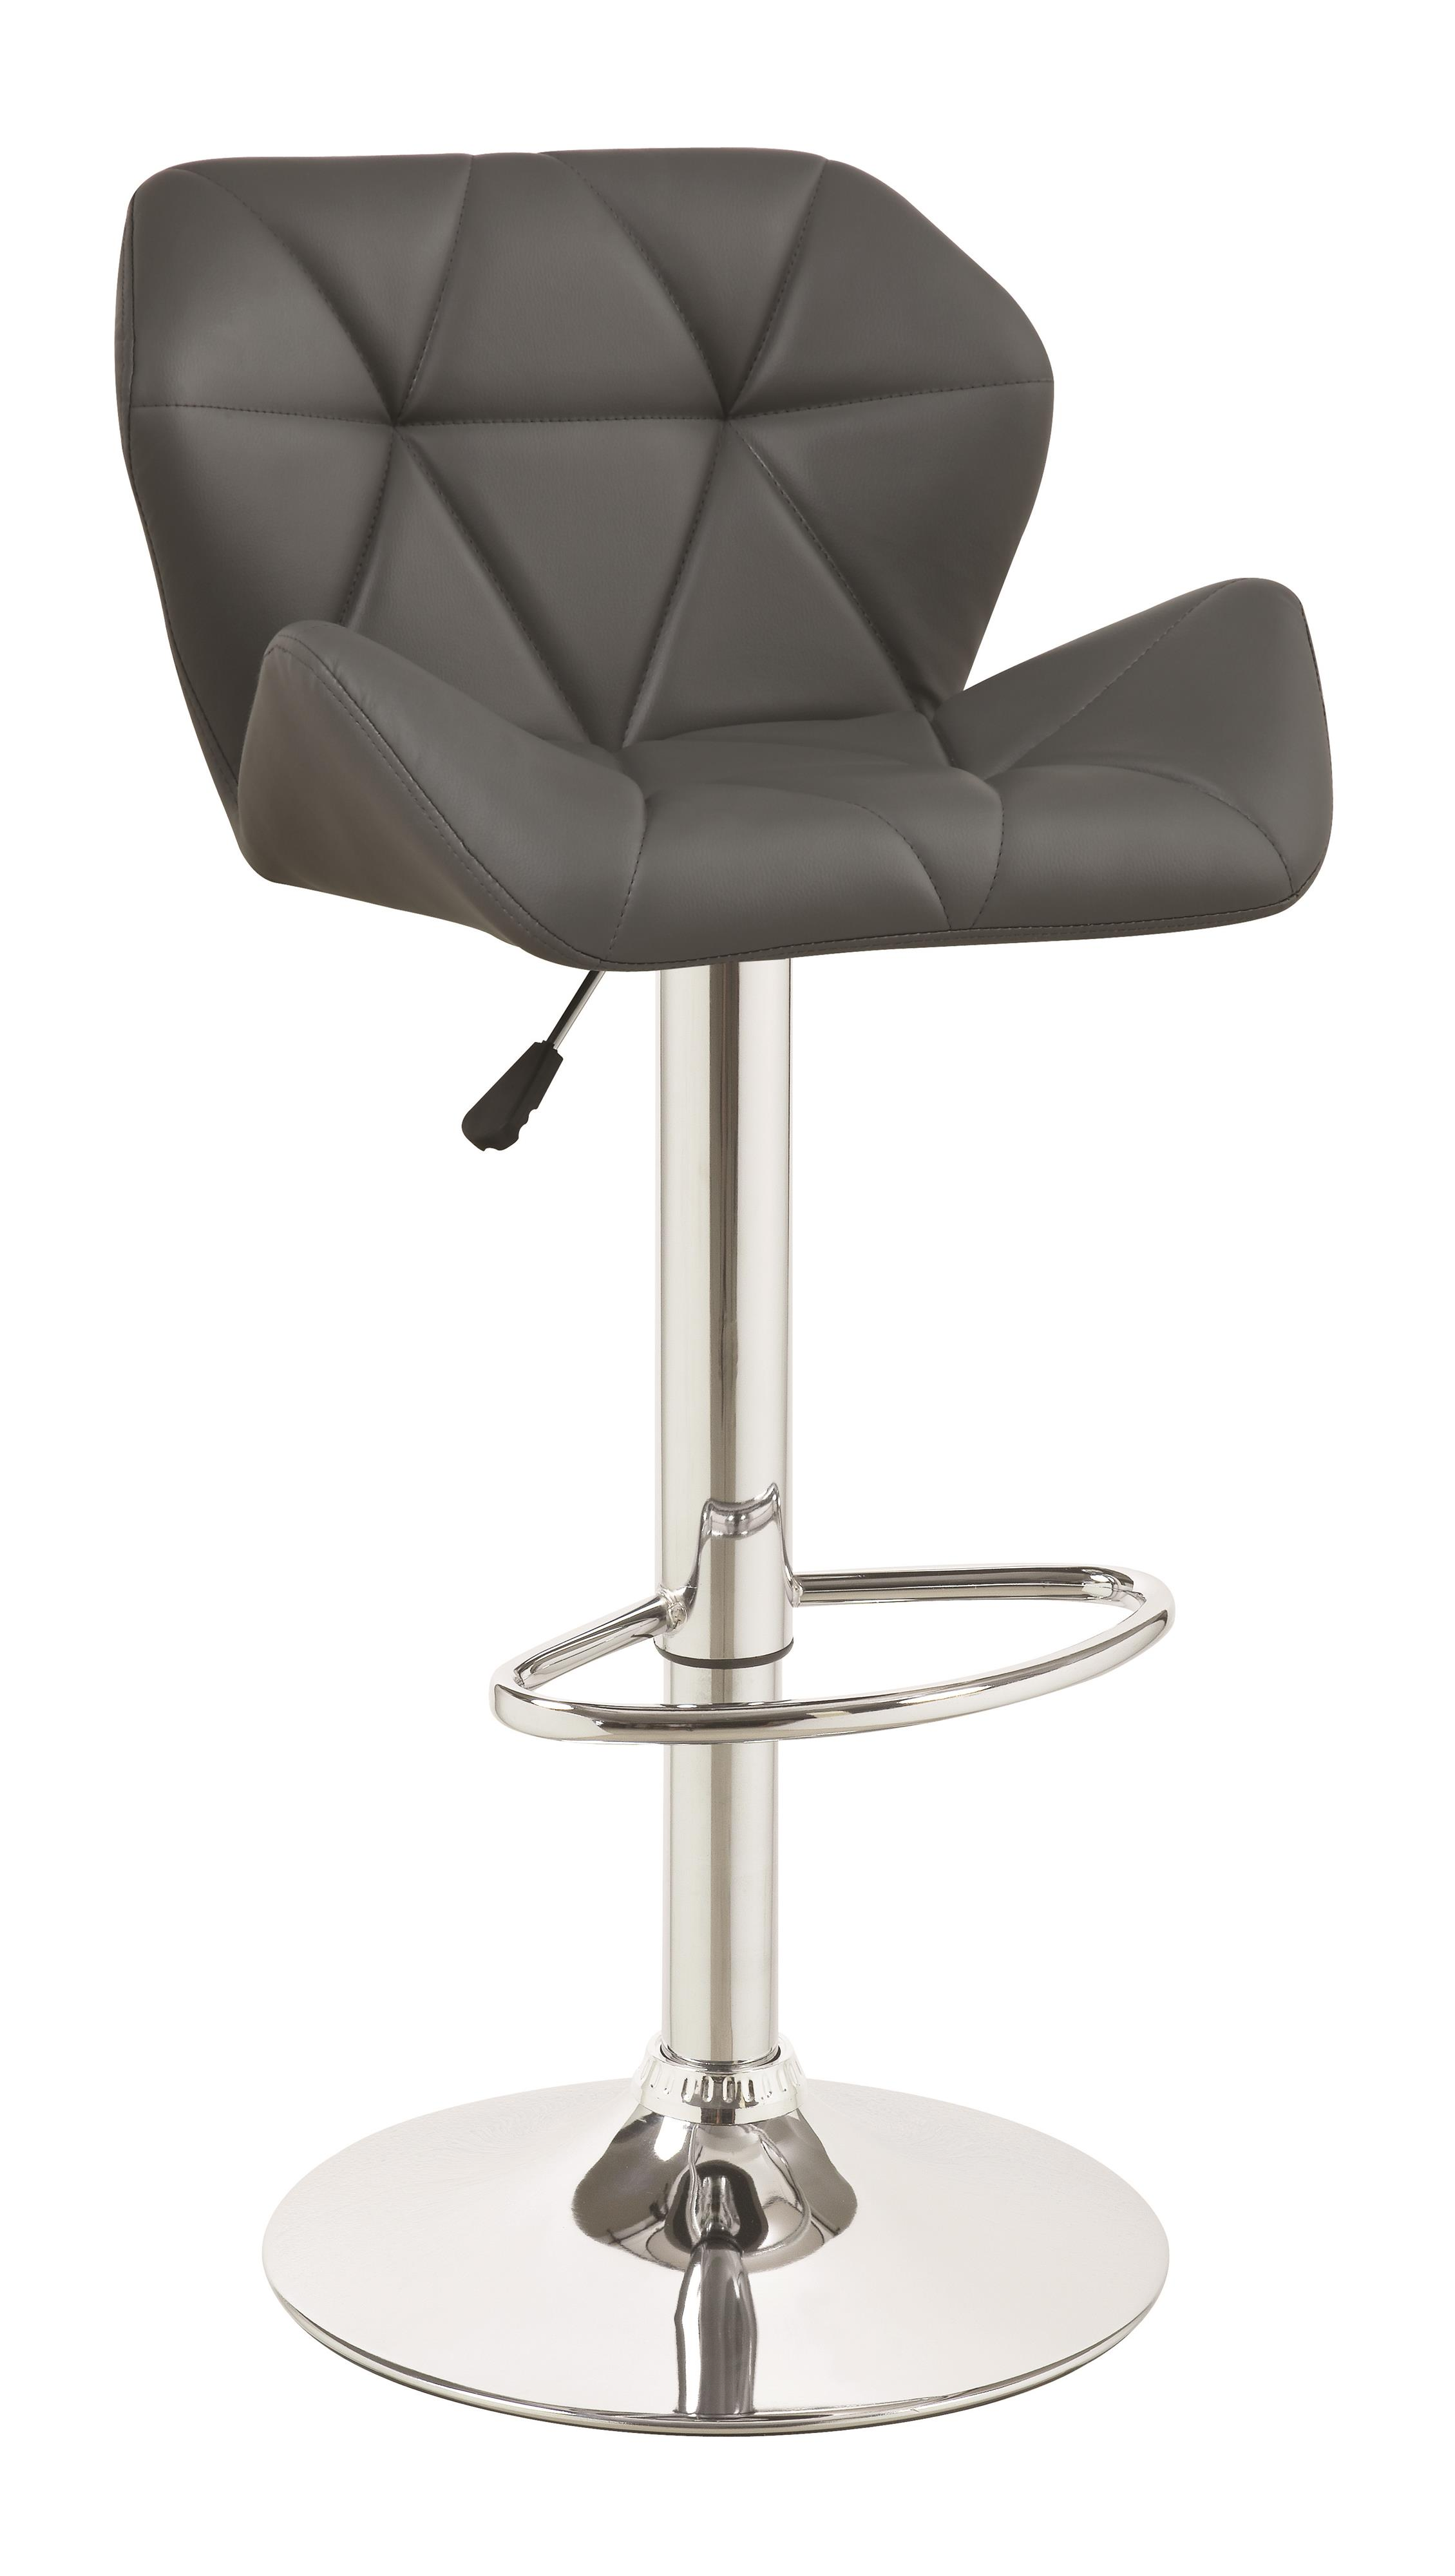 Dining Chairs and Bar Stools Adjustable Stool by Coaster at Northeast Factory Direct